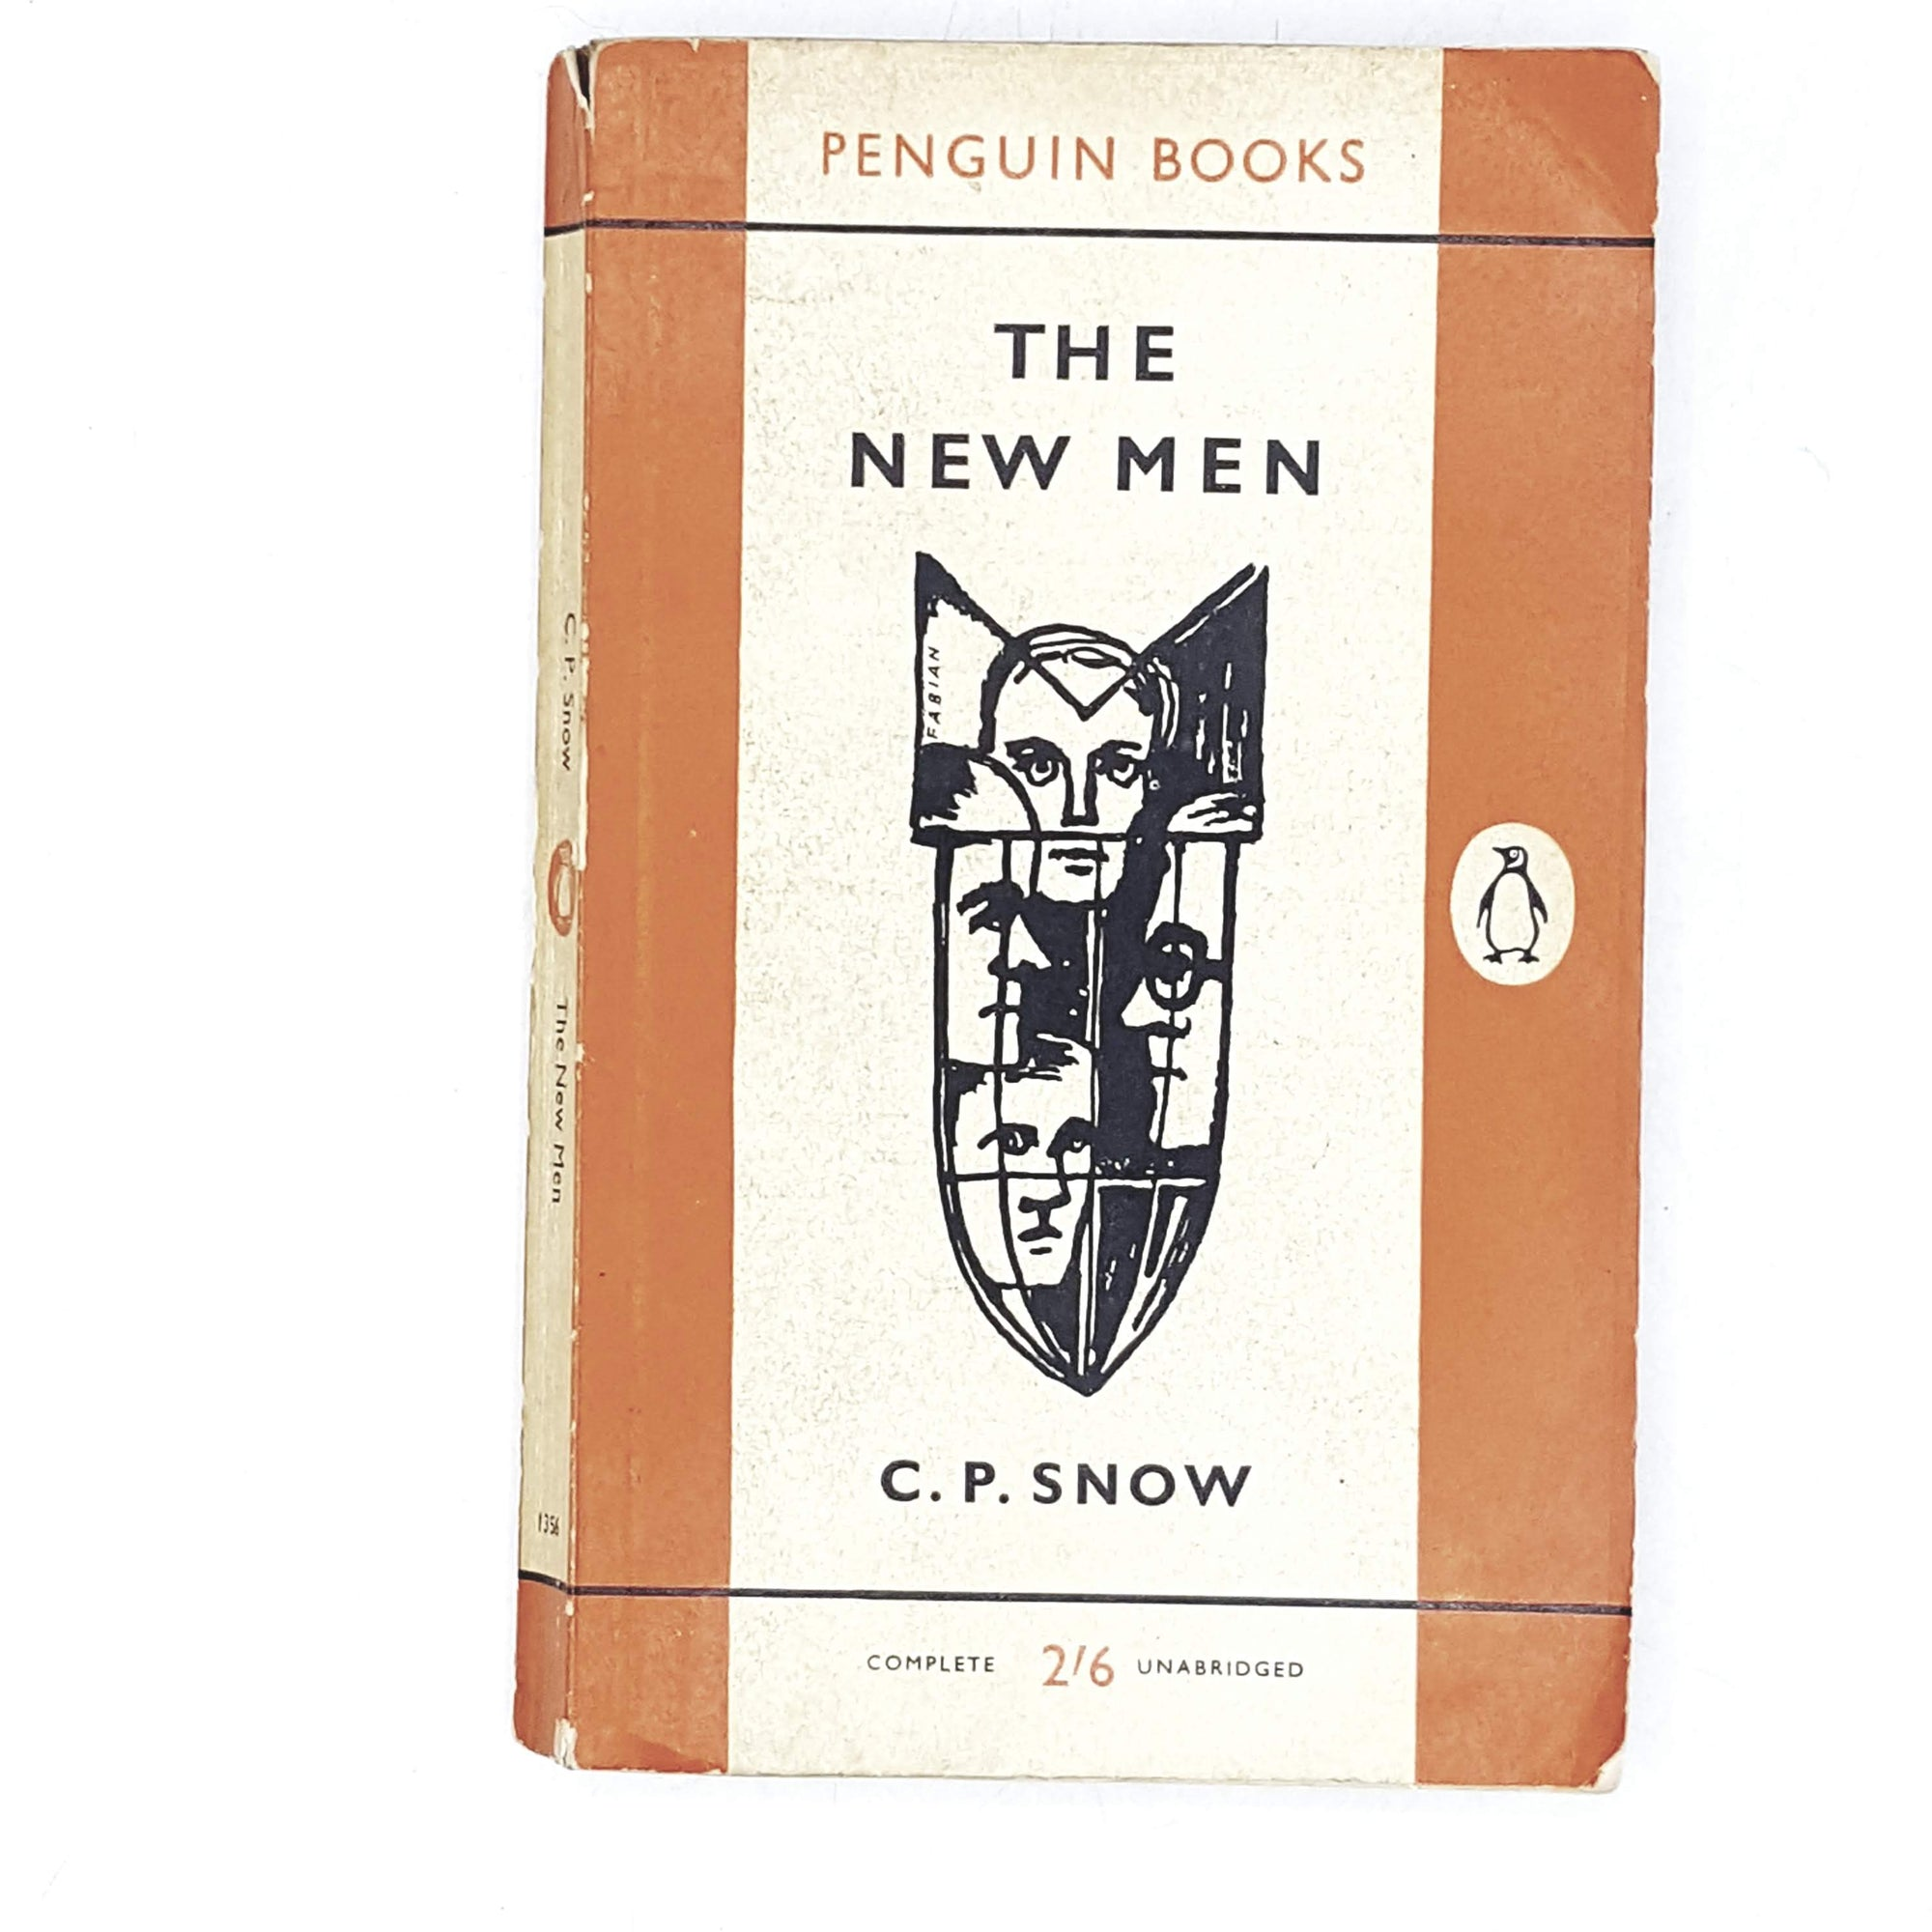 Vintage Penguin The New Men by C. P. Snow 1961